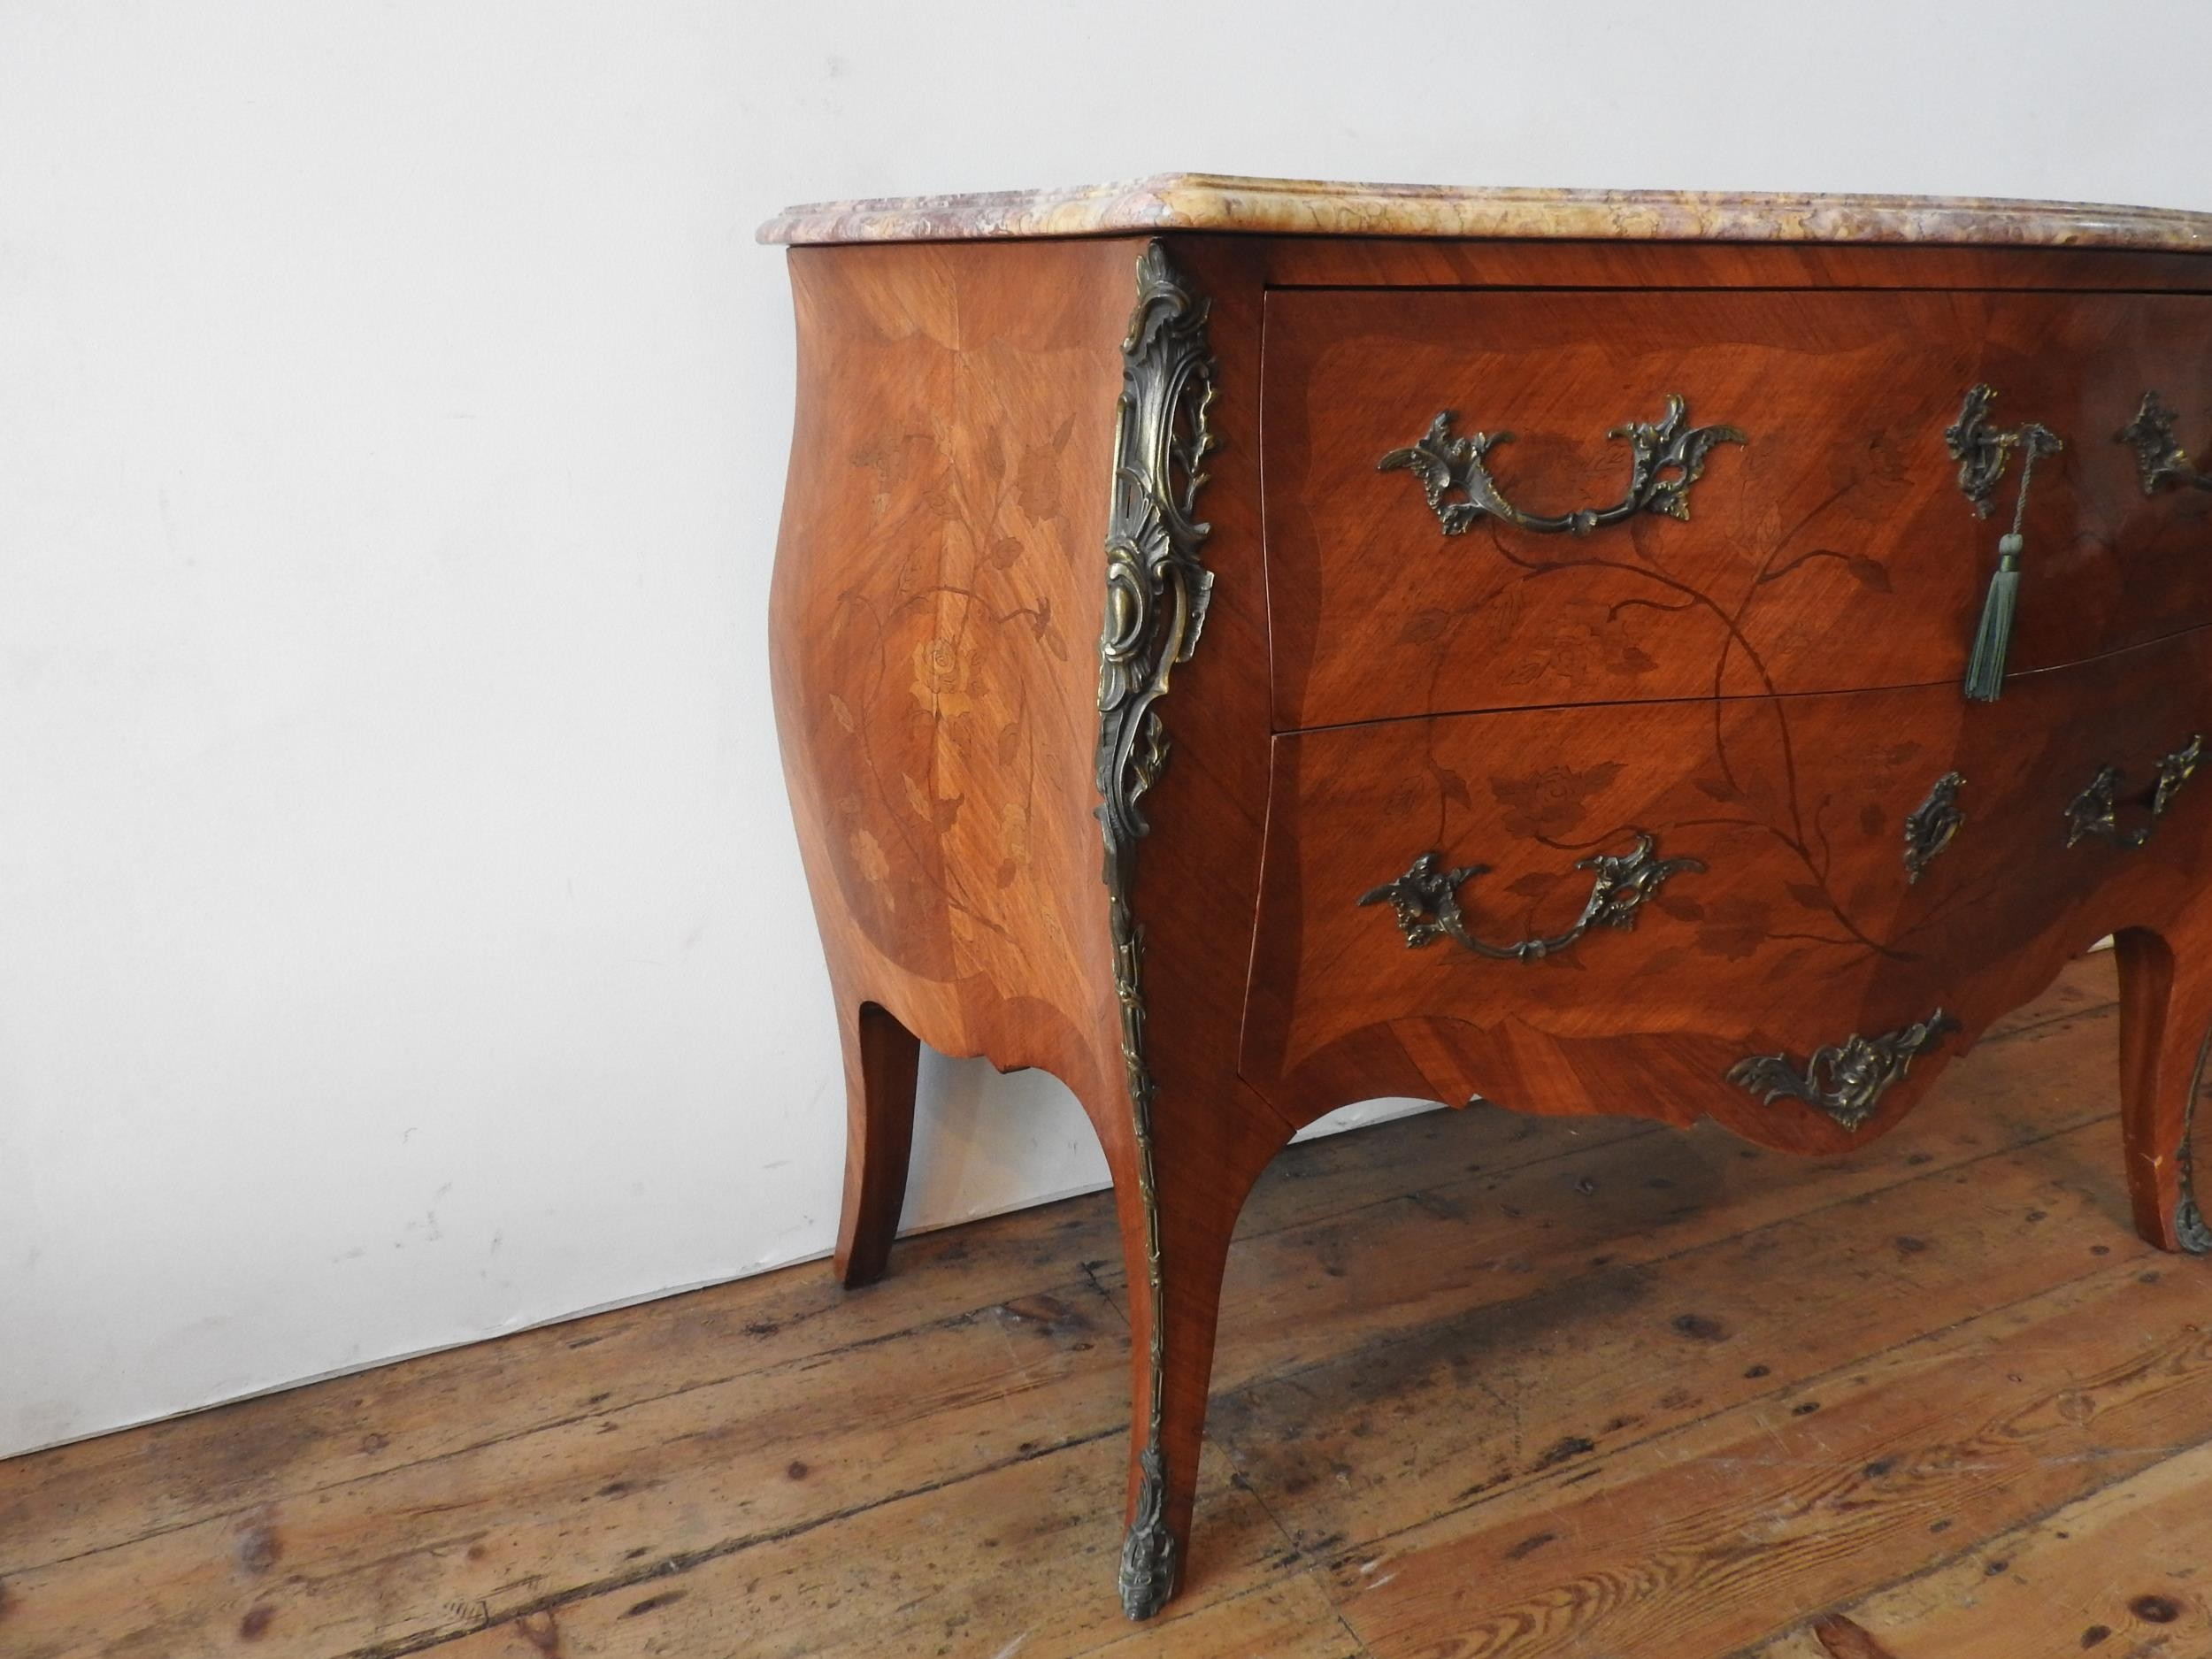 A 20th CENTURY LOUIS XV STYLE CONTINENTAL MARBLE TOP BOMBE CHEST, the two drawer chest with floral - Image 3 of 4